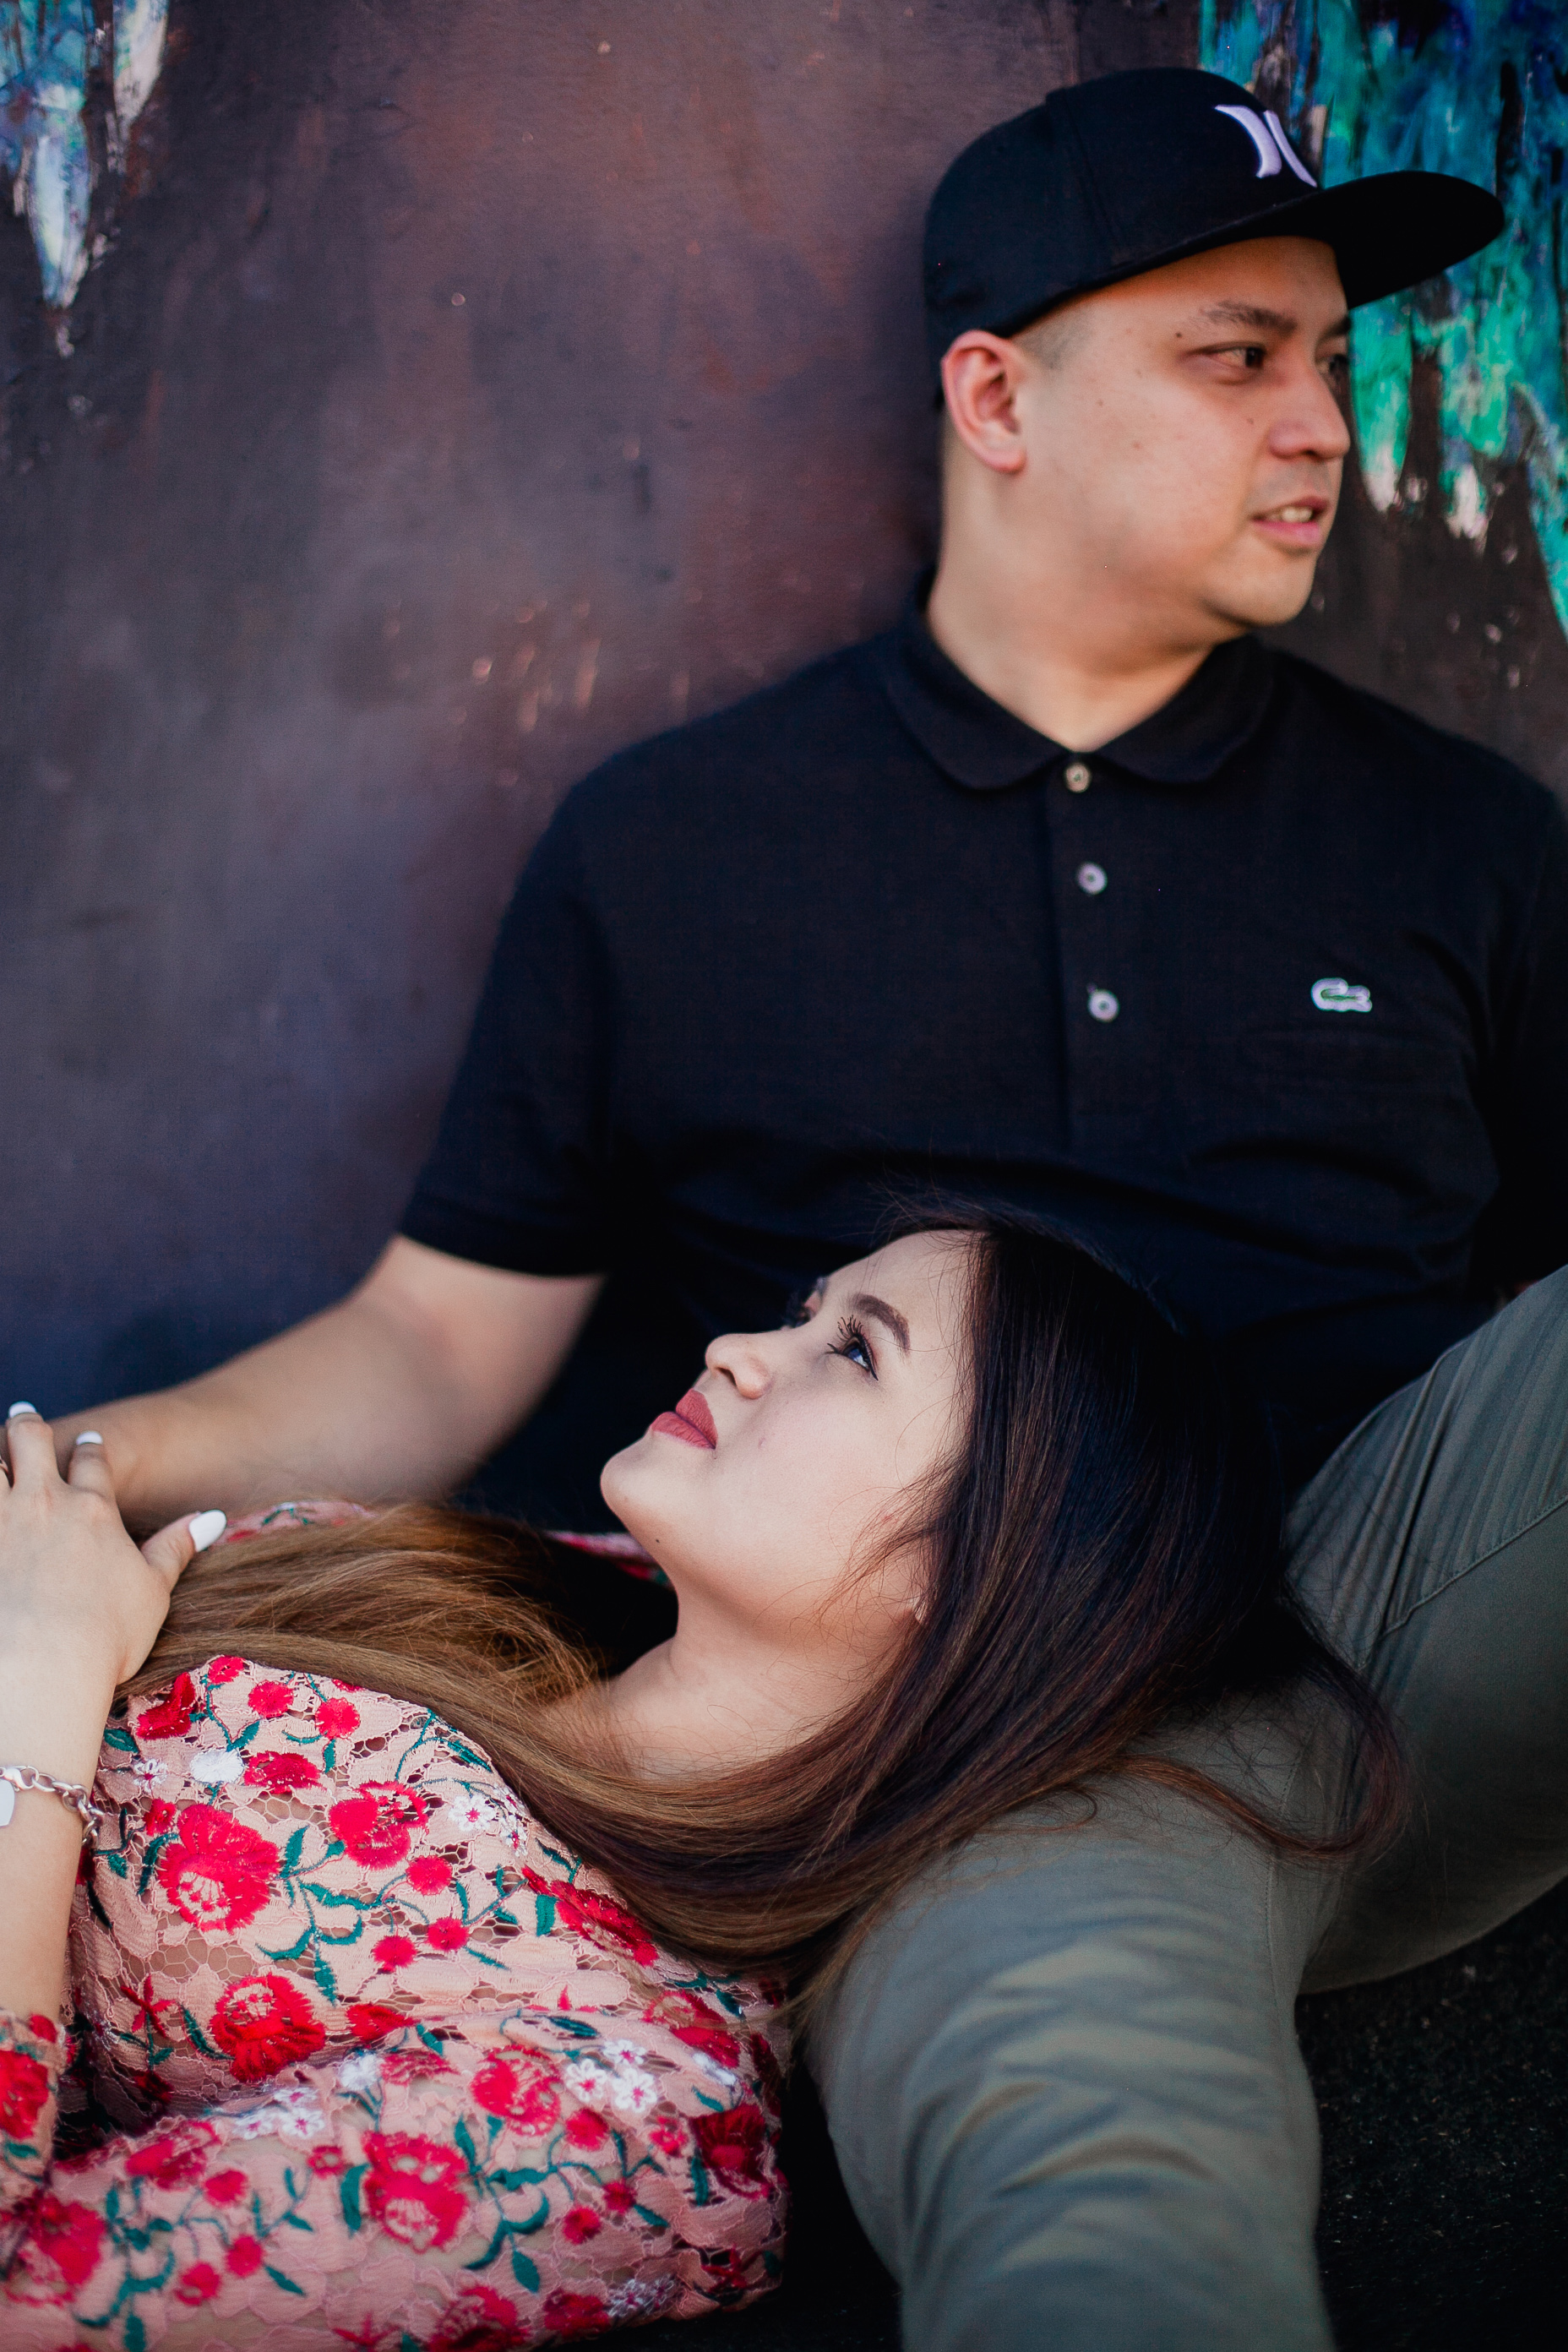 kristina_jeff_esession_016.jpg